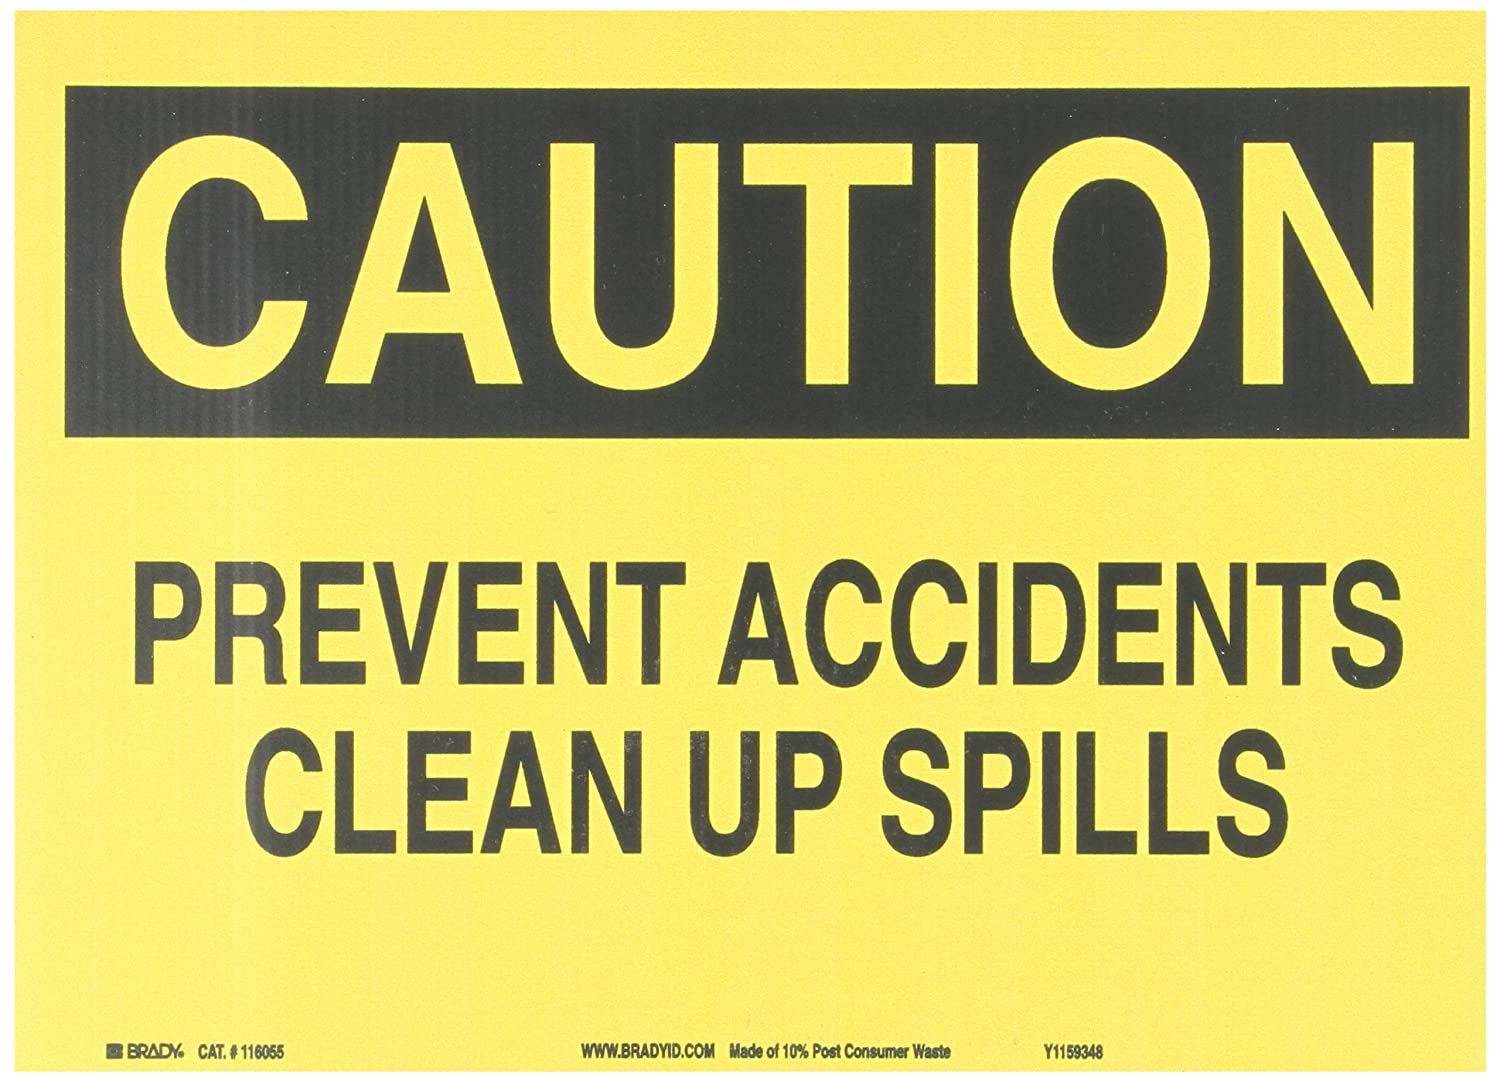 Legend Caution Prevent Accidents Clean Up Spills Brady 116219 14 Width x 10 Height B-563 Plastic Black On Yellow Color Sustainable Safety Sign